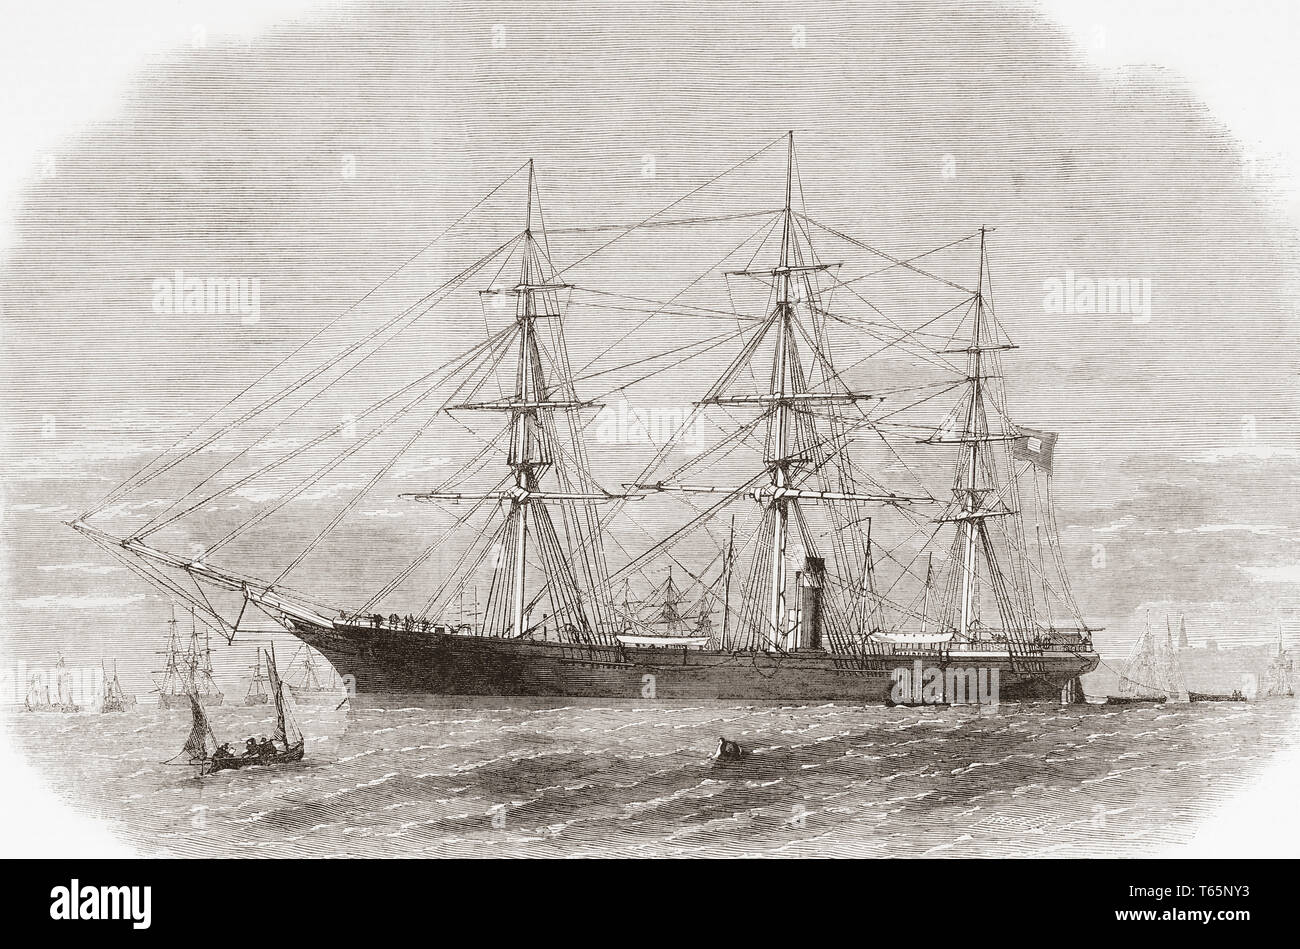 The surrender of the CSS Shenandoah on the River Mersey, Liverpool, England, November 6, 1865.  From The Illustrated London News, published 1865. - Stock Image